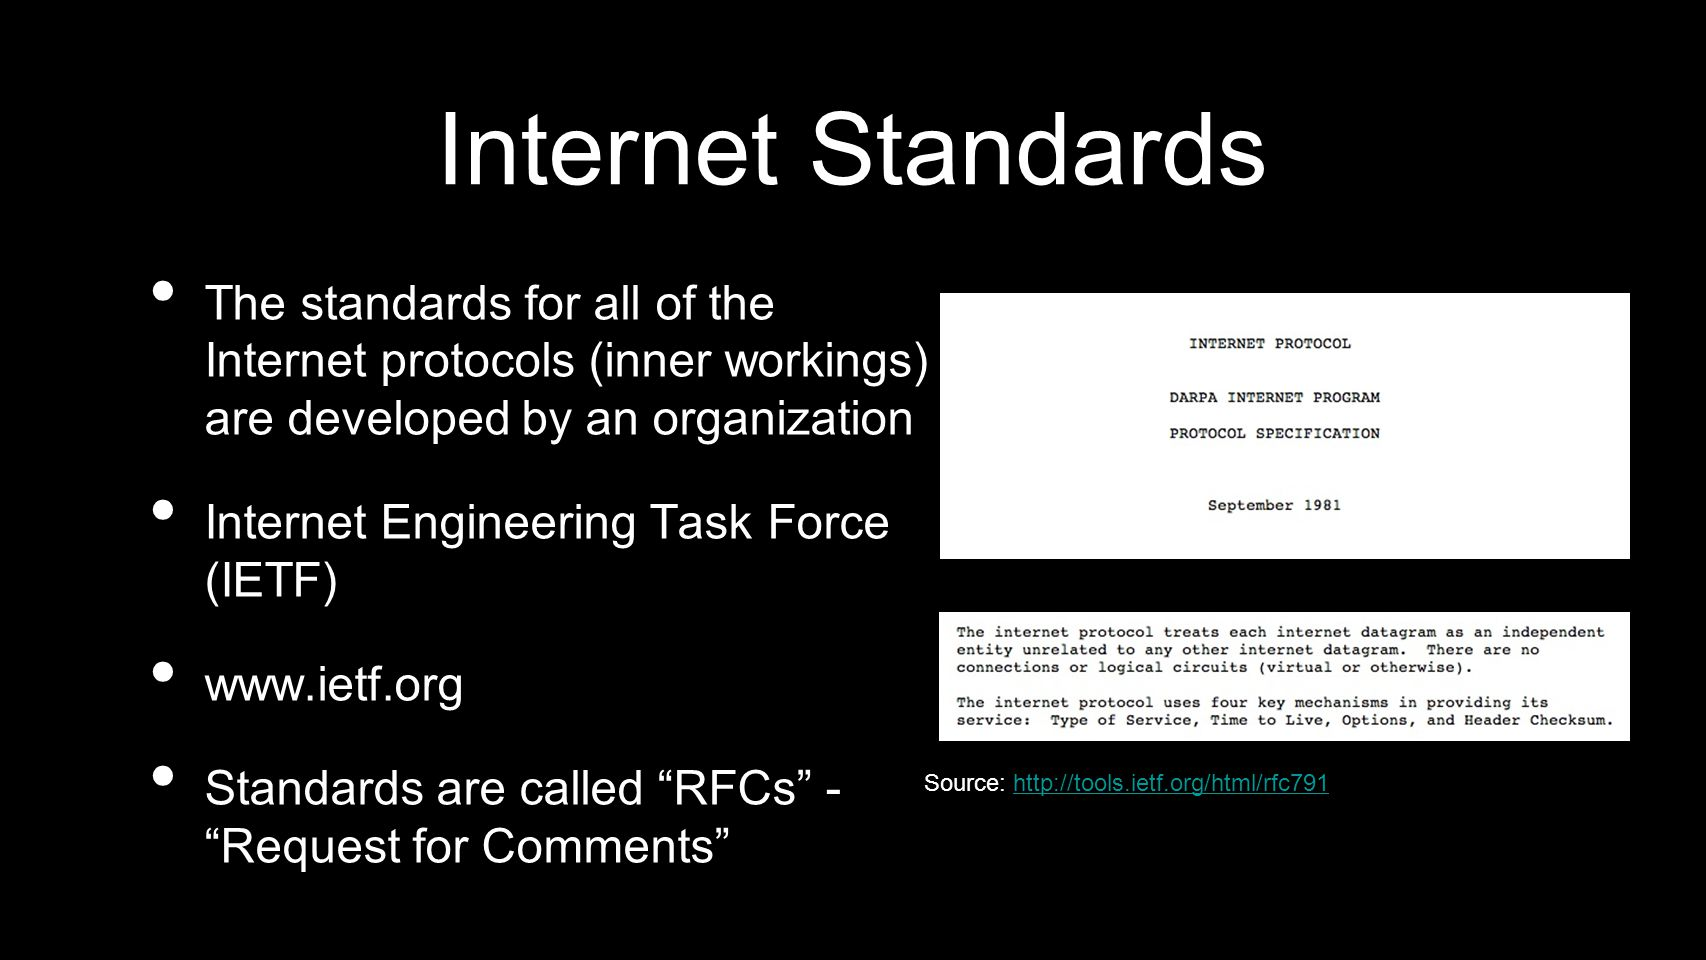 Internet Standards The standards for all of the Internet protocols (inner workings) are developed by an organization Internet Engineering Task Force (